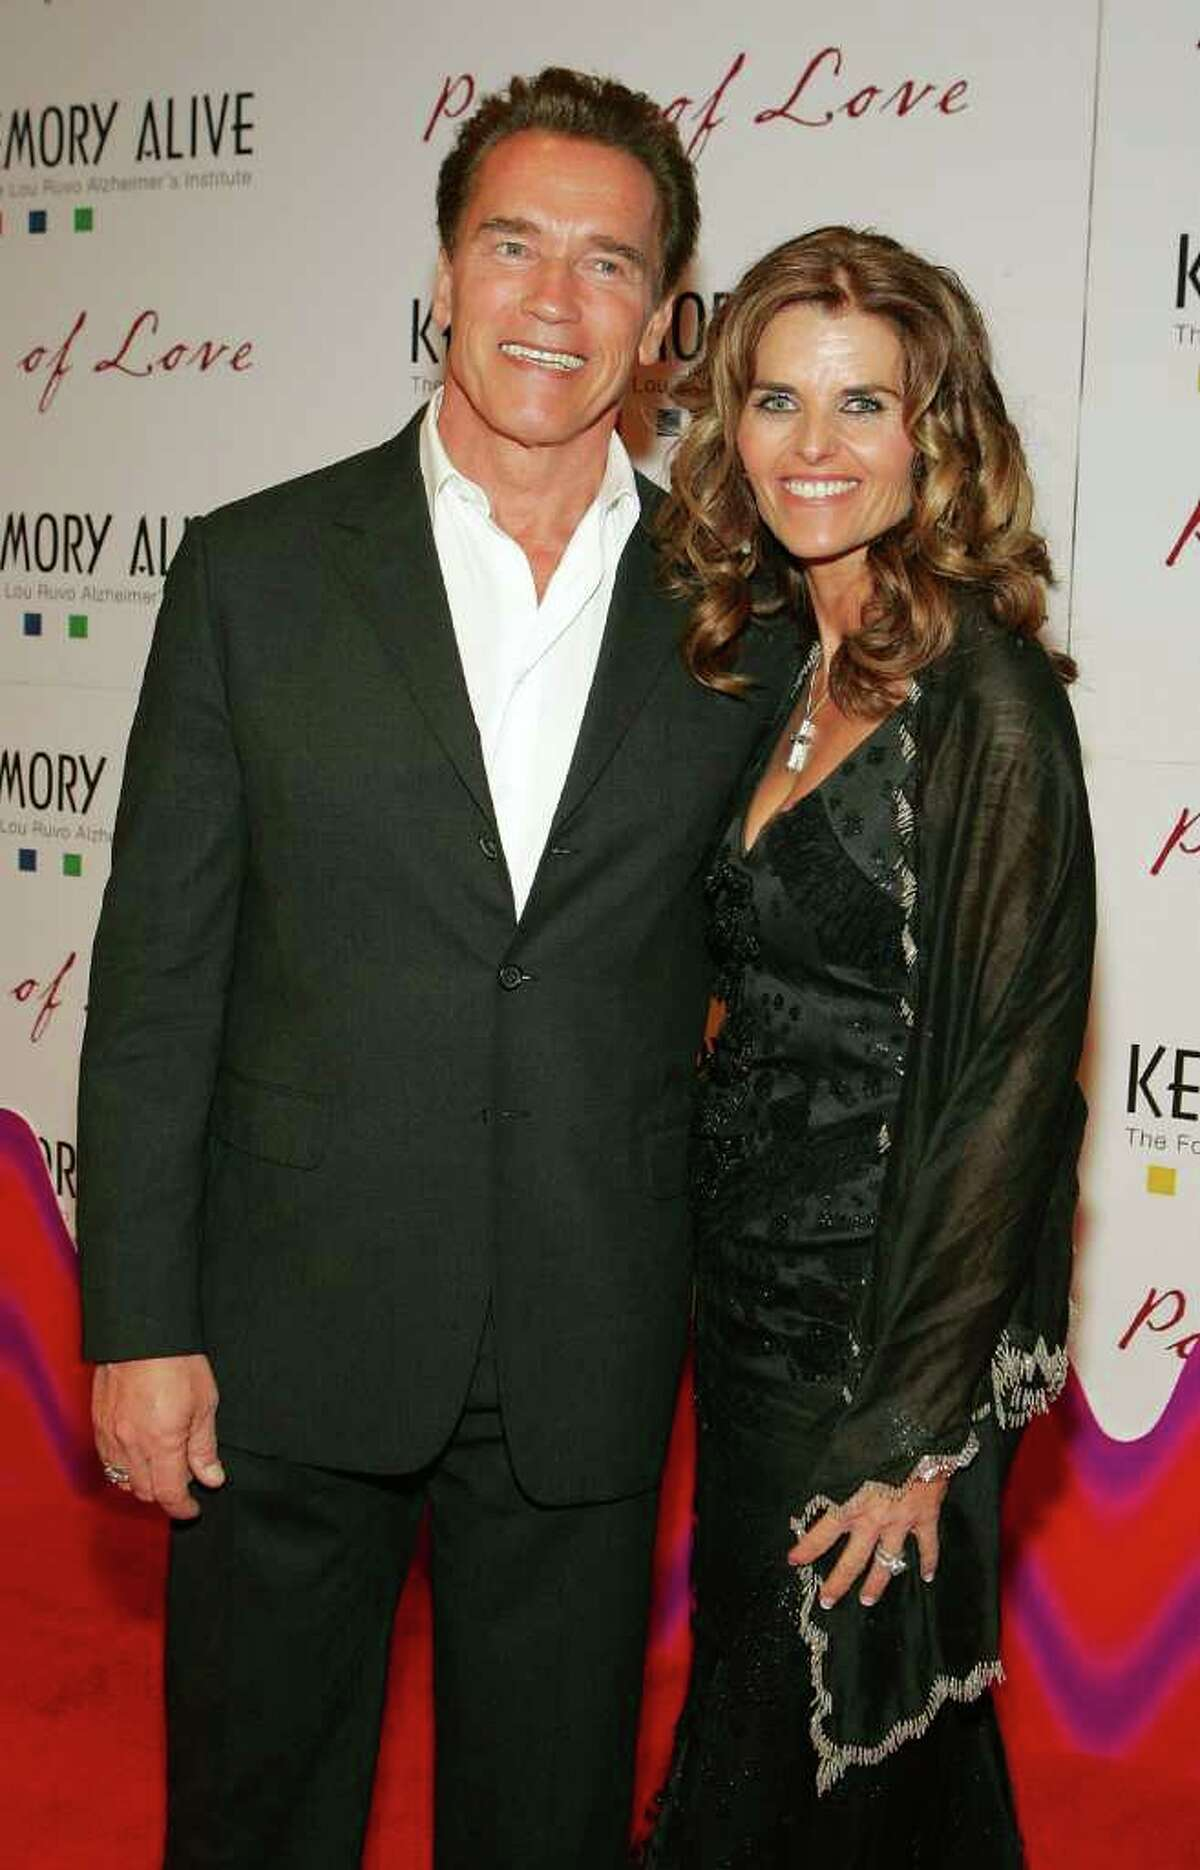 LAS VEGAS - FEBRUARY 11: California Gov. Arnold Schwarzenegger and his wife Maria Shriver arrive at the Keep Memory Alive Foundation's 10th annual gala to benefit the Lou Ruvo Alzheimer's Institute at the MGM Grand Conference Center February 11, 2006 in Las Vegas, Nevada. (Photo by Ethan Miller/Getty Images)